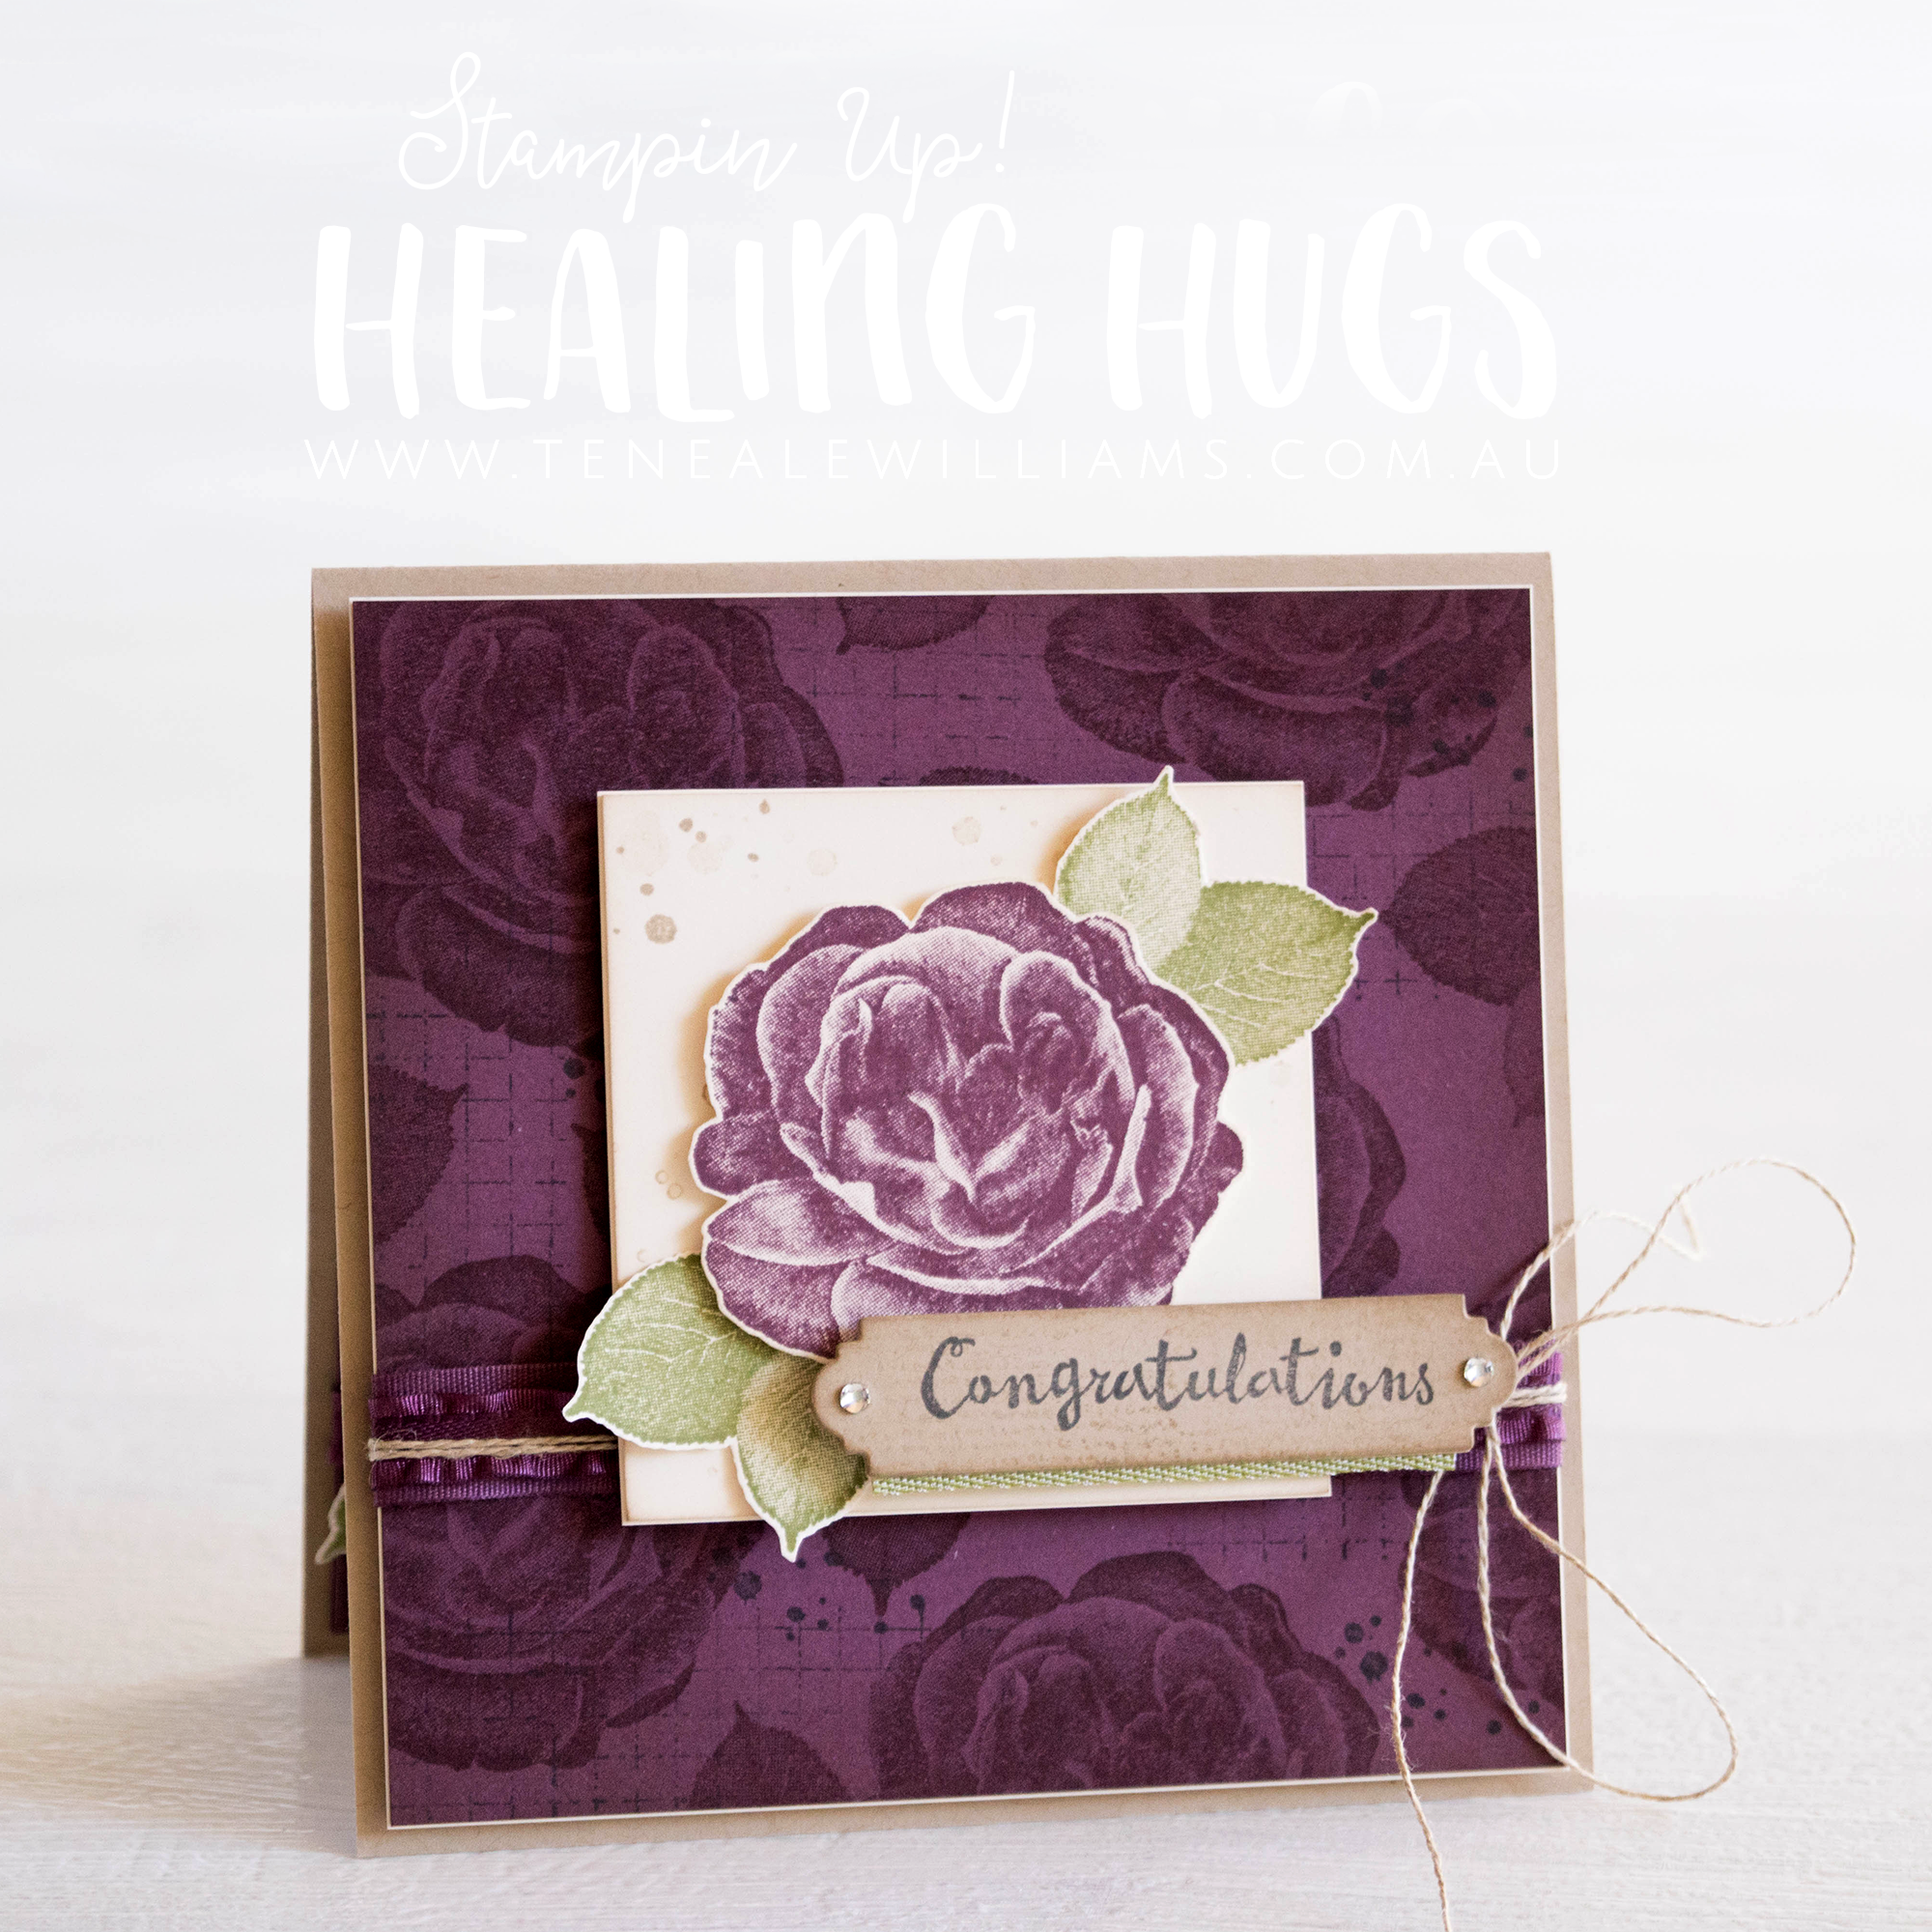 By Teneale Williams | Healing Hugs Stamp Set from Stampin' Up!